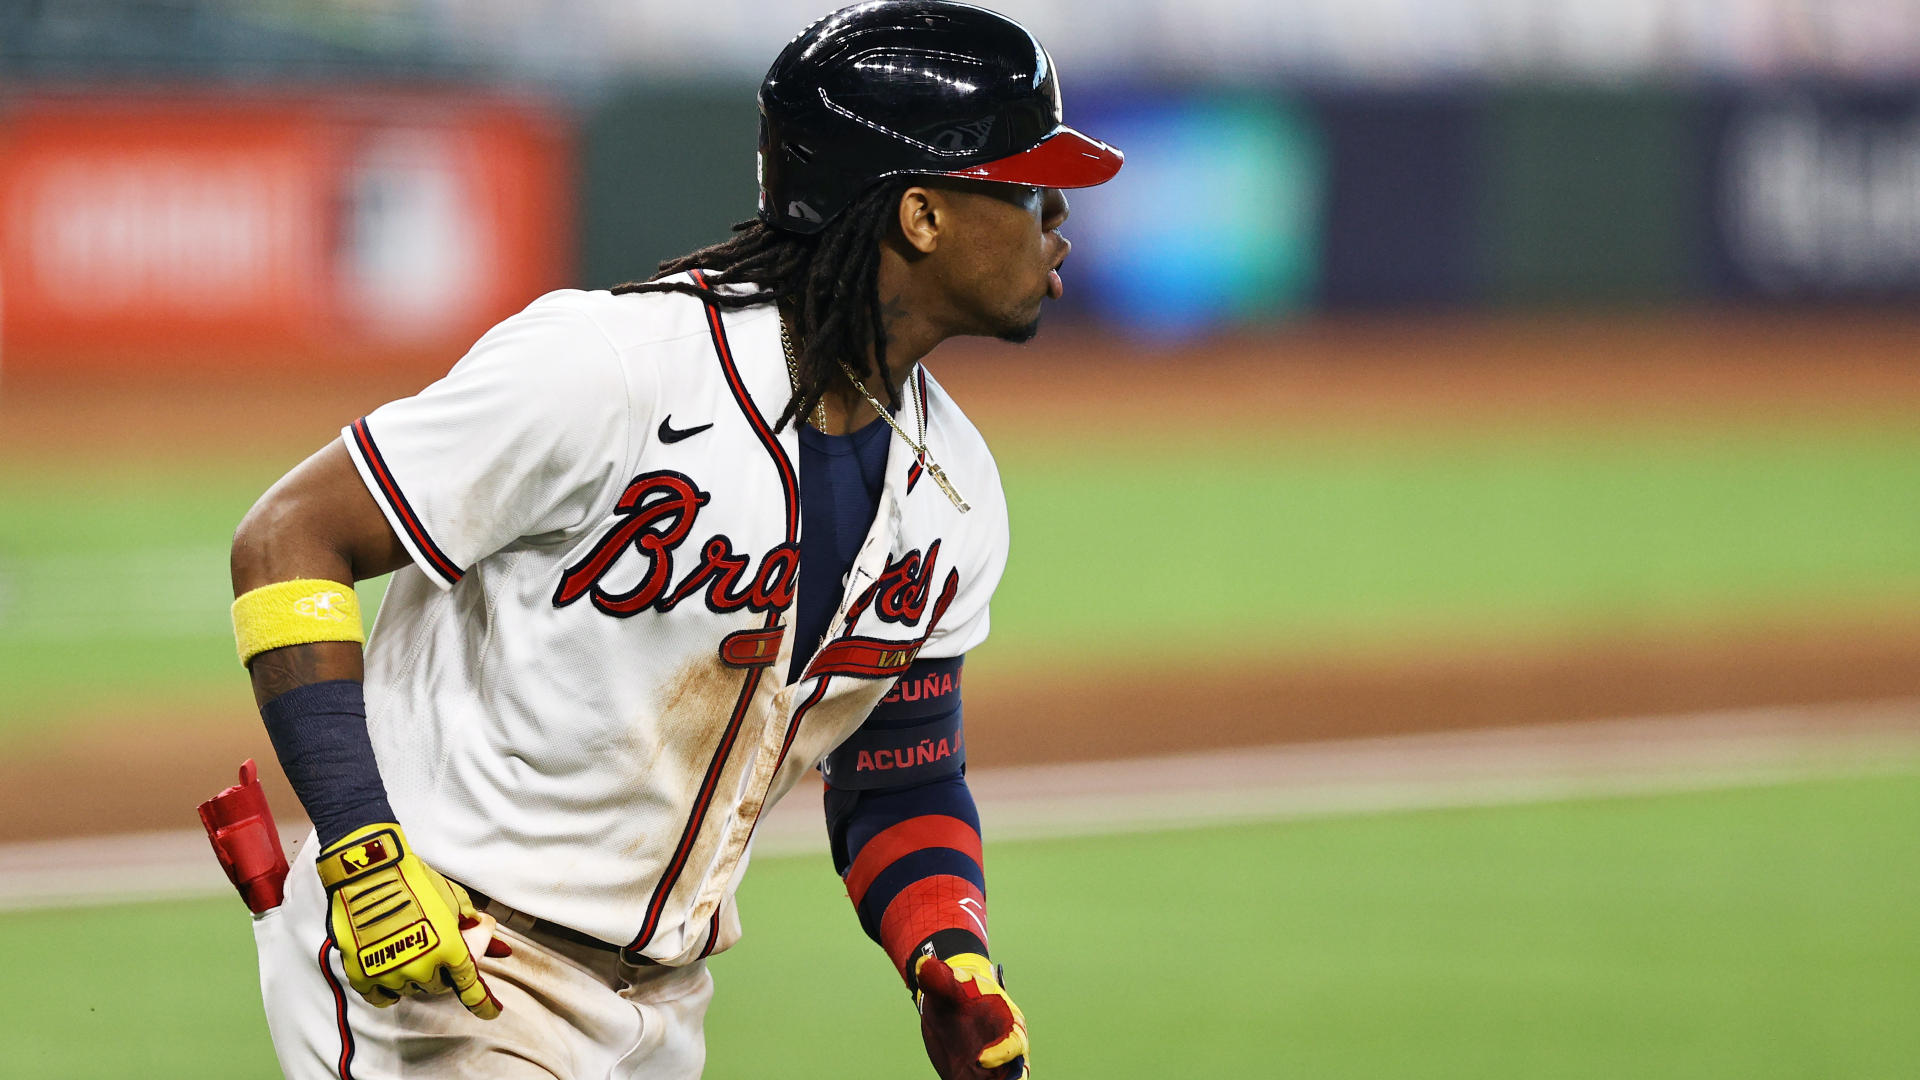 Ronald Acuna Jr.  injury update: The Braves star will be examined after having abdominal tension